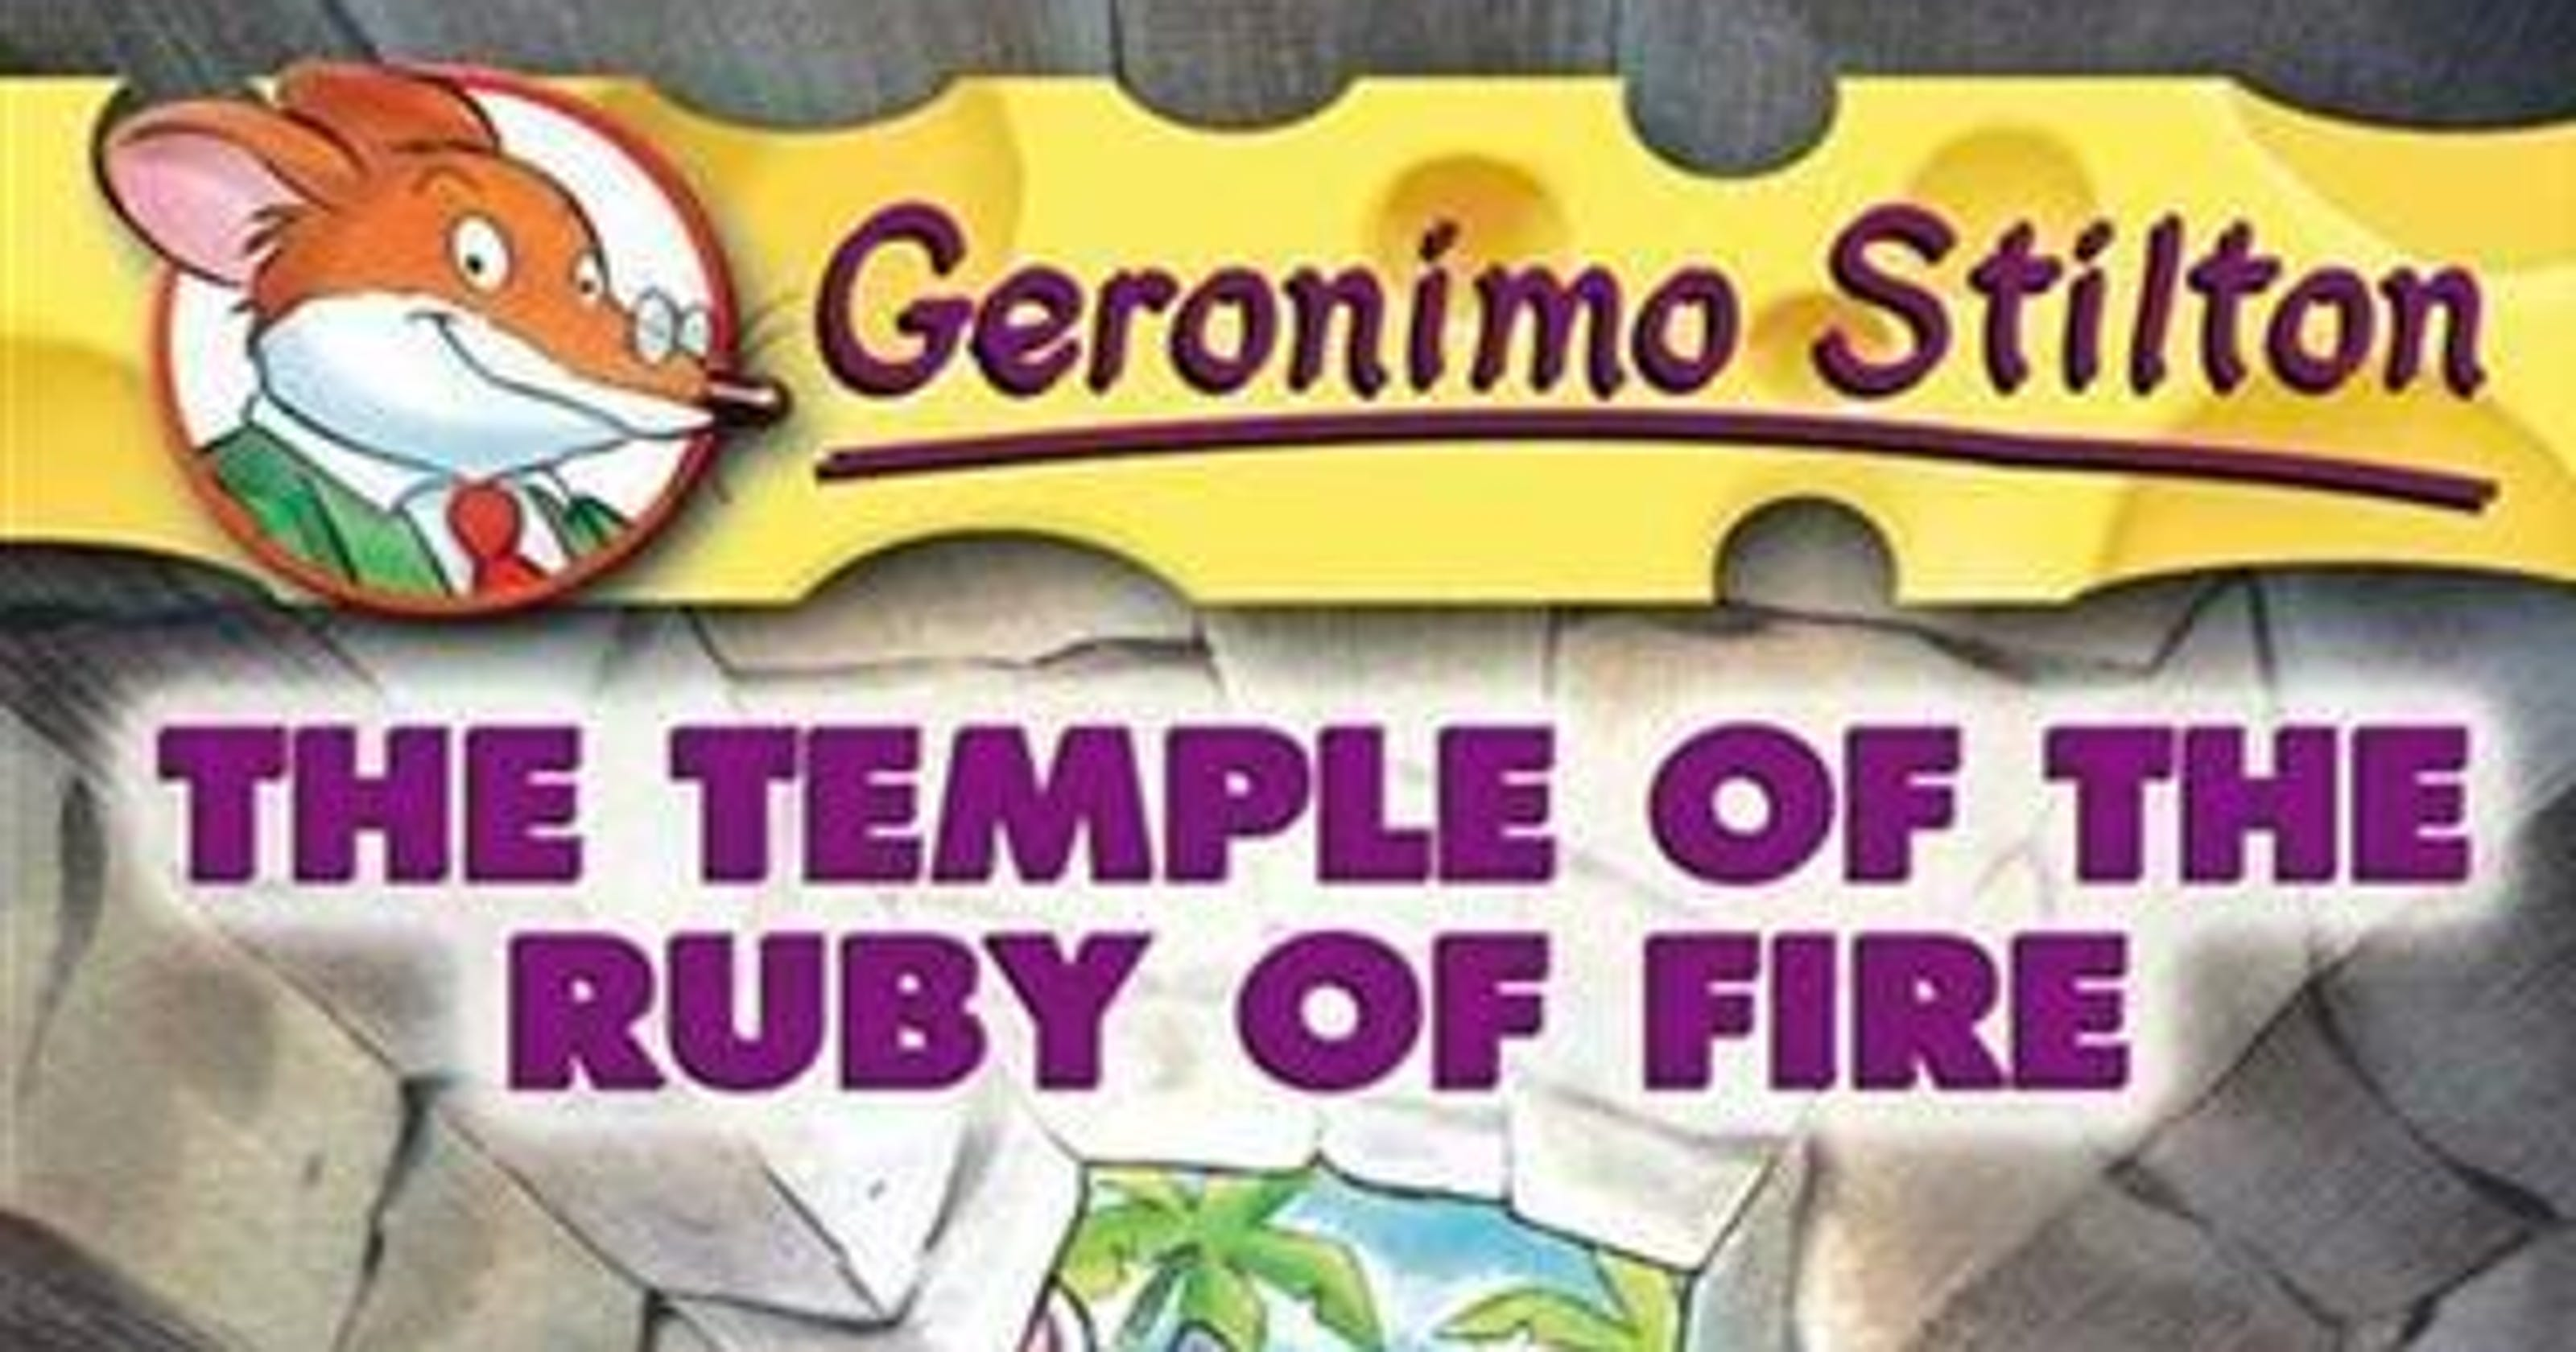 'Temple of the Ruby of Fire' a fun-filled read